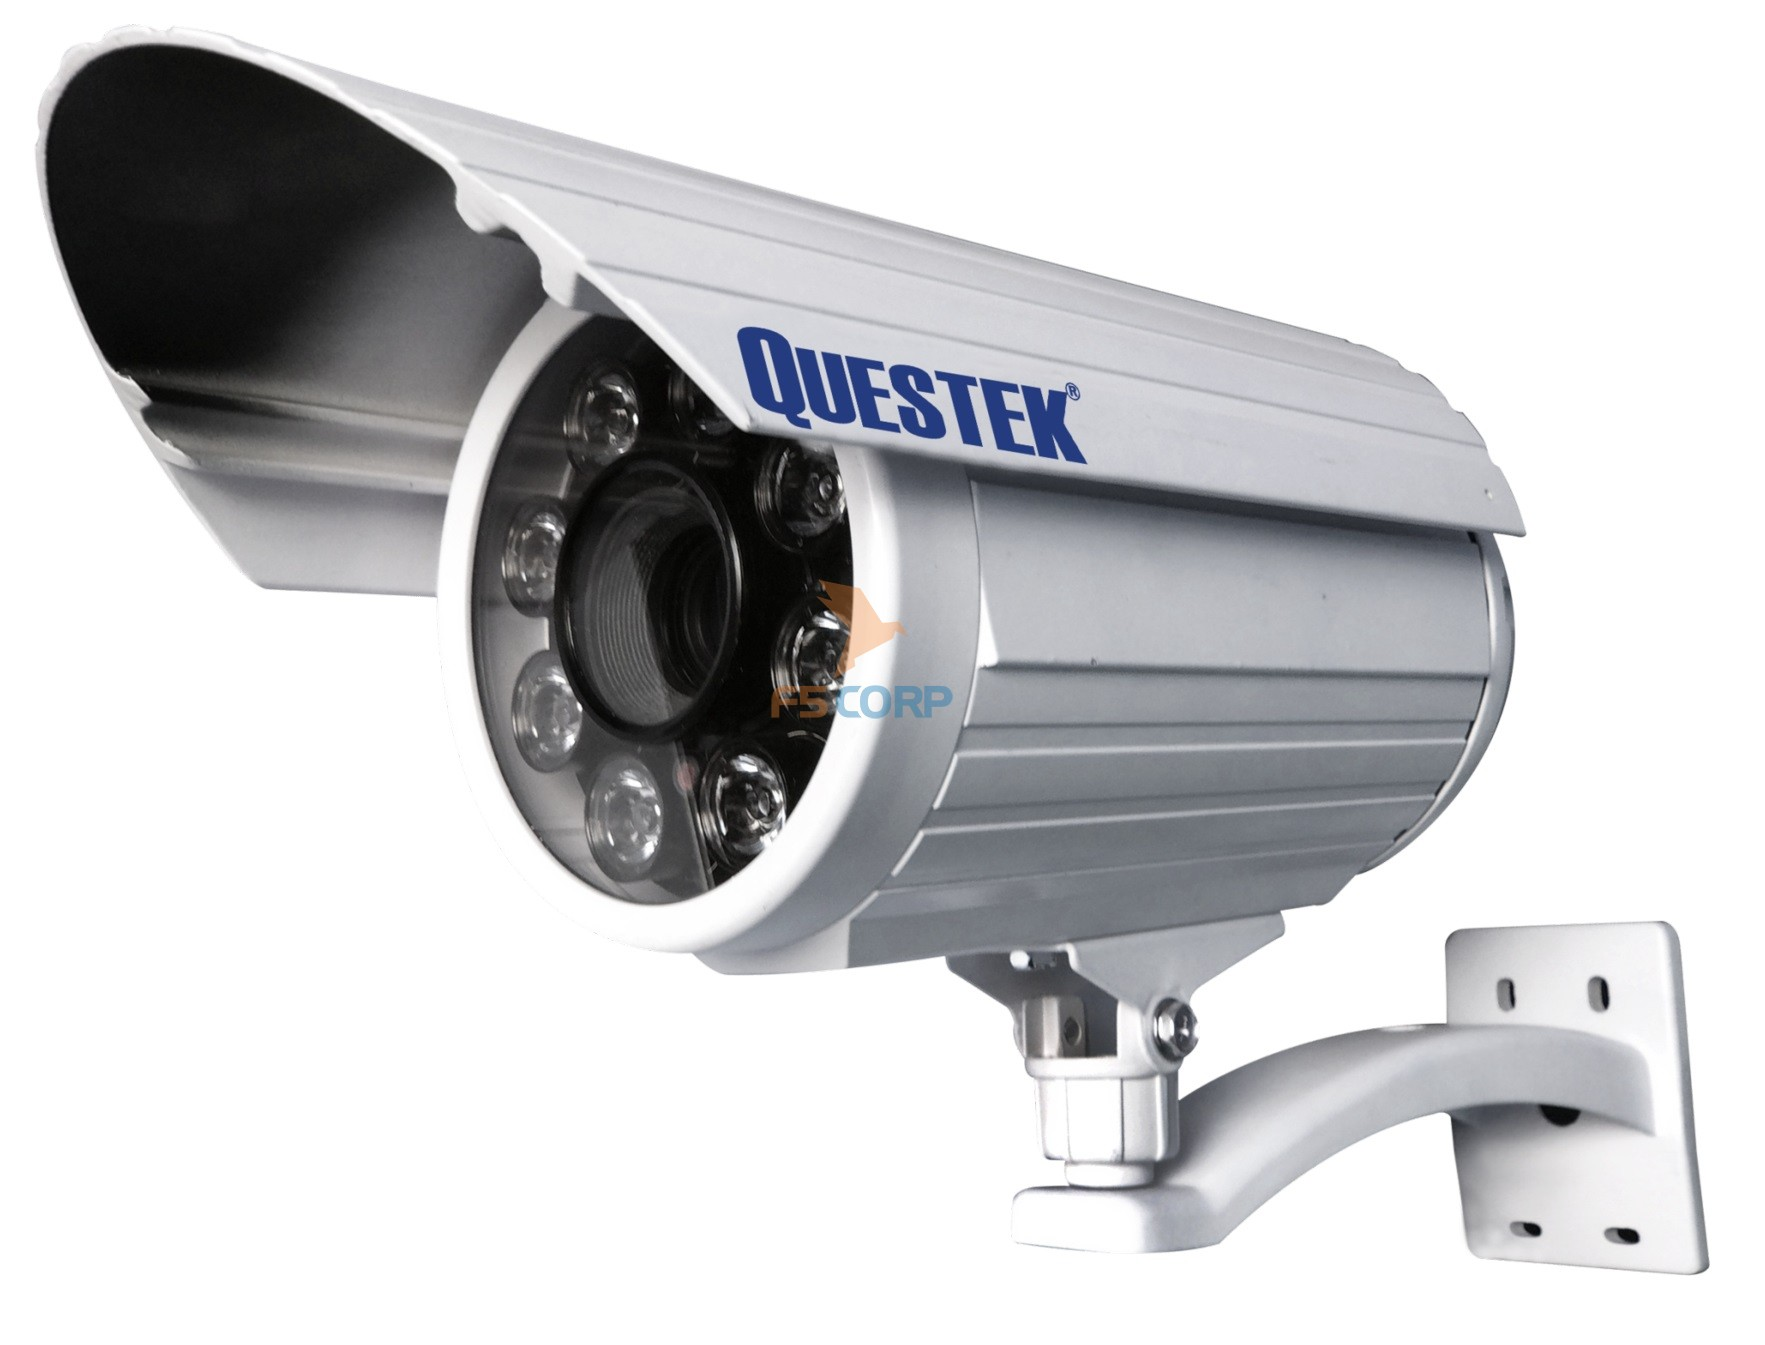 Camera Questek QN-622AHD